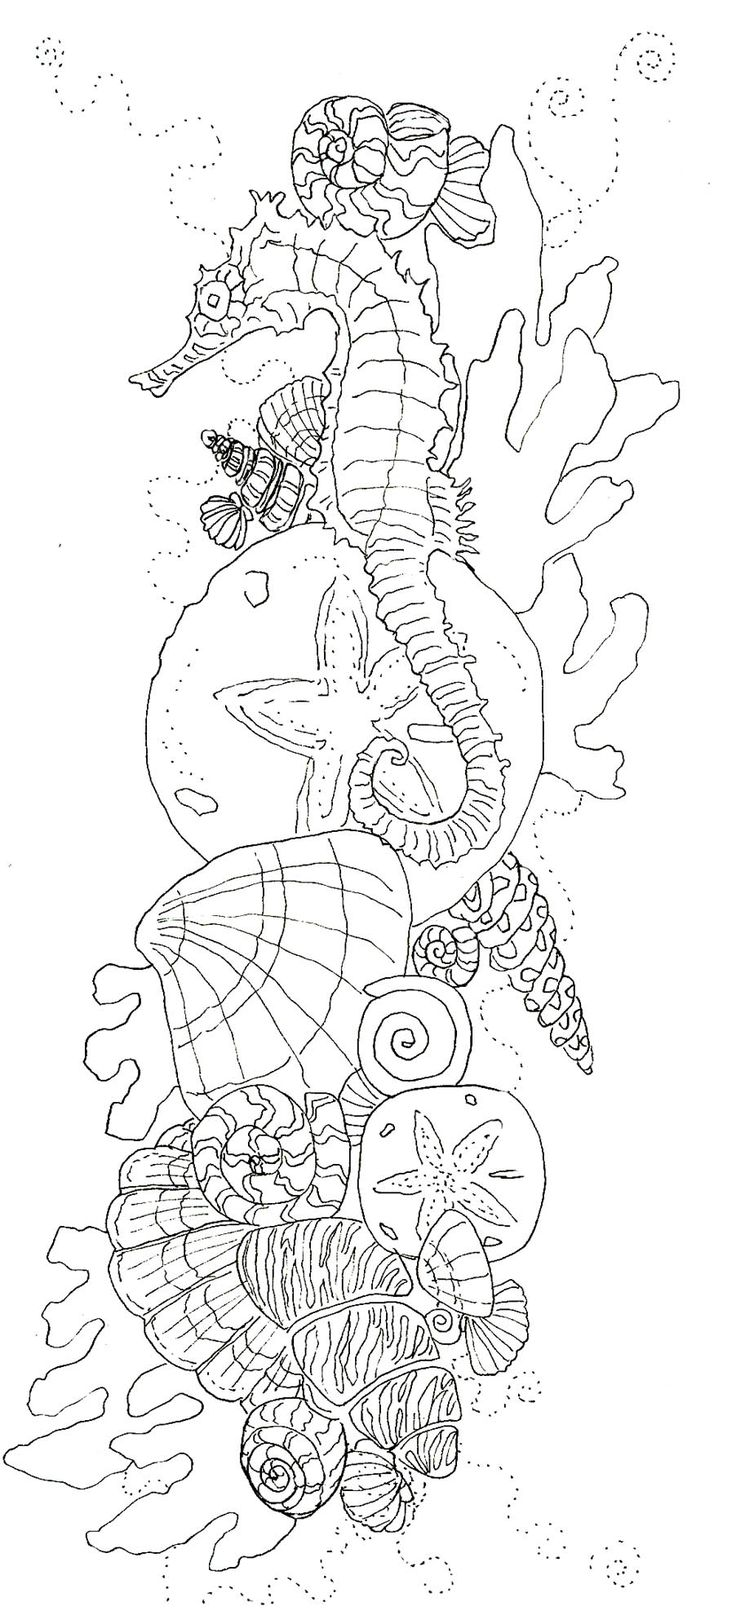 Coloring pages starfish intermediate - The Drawing Before It Became Color Seahorse Shells Ocean Coloring Pages Colouring Adult Detailed Advanced Printable Kleuren Voor Volwassenen Coloriage Pour